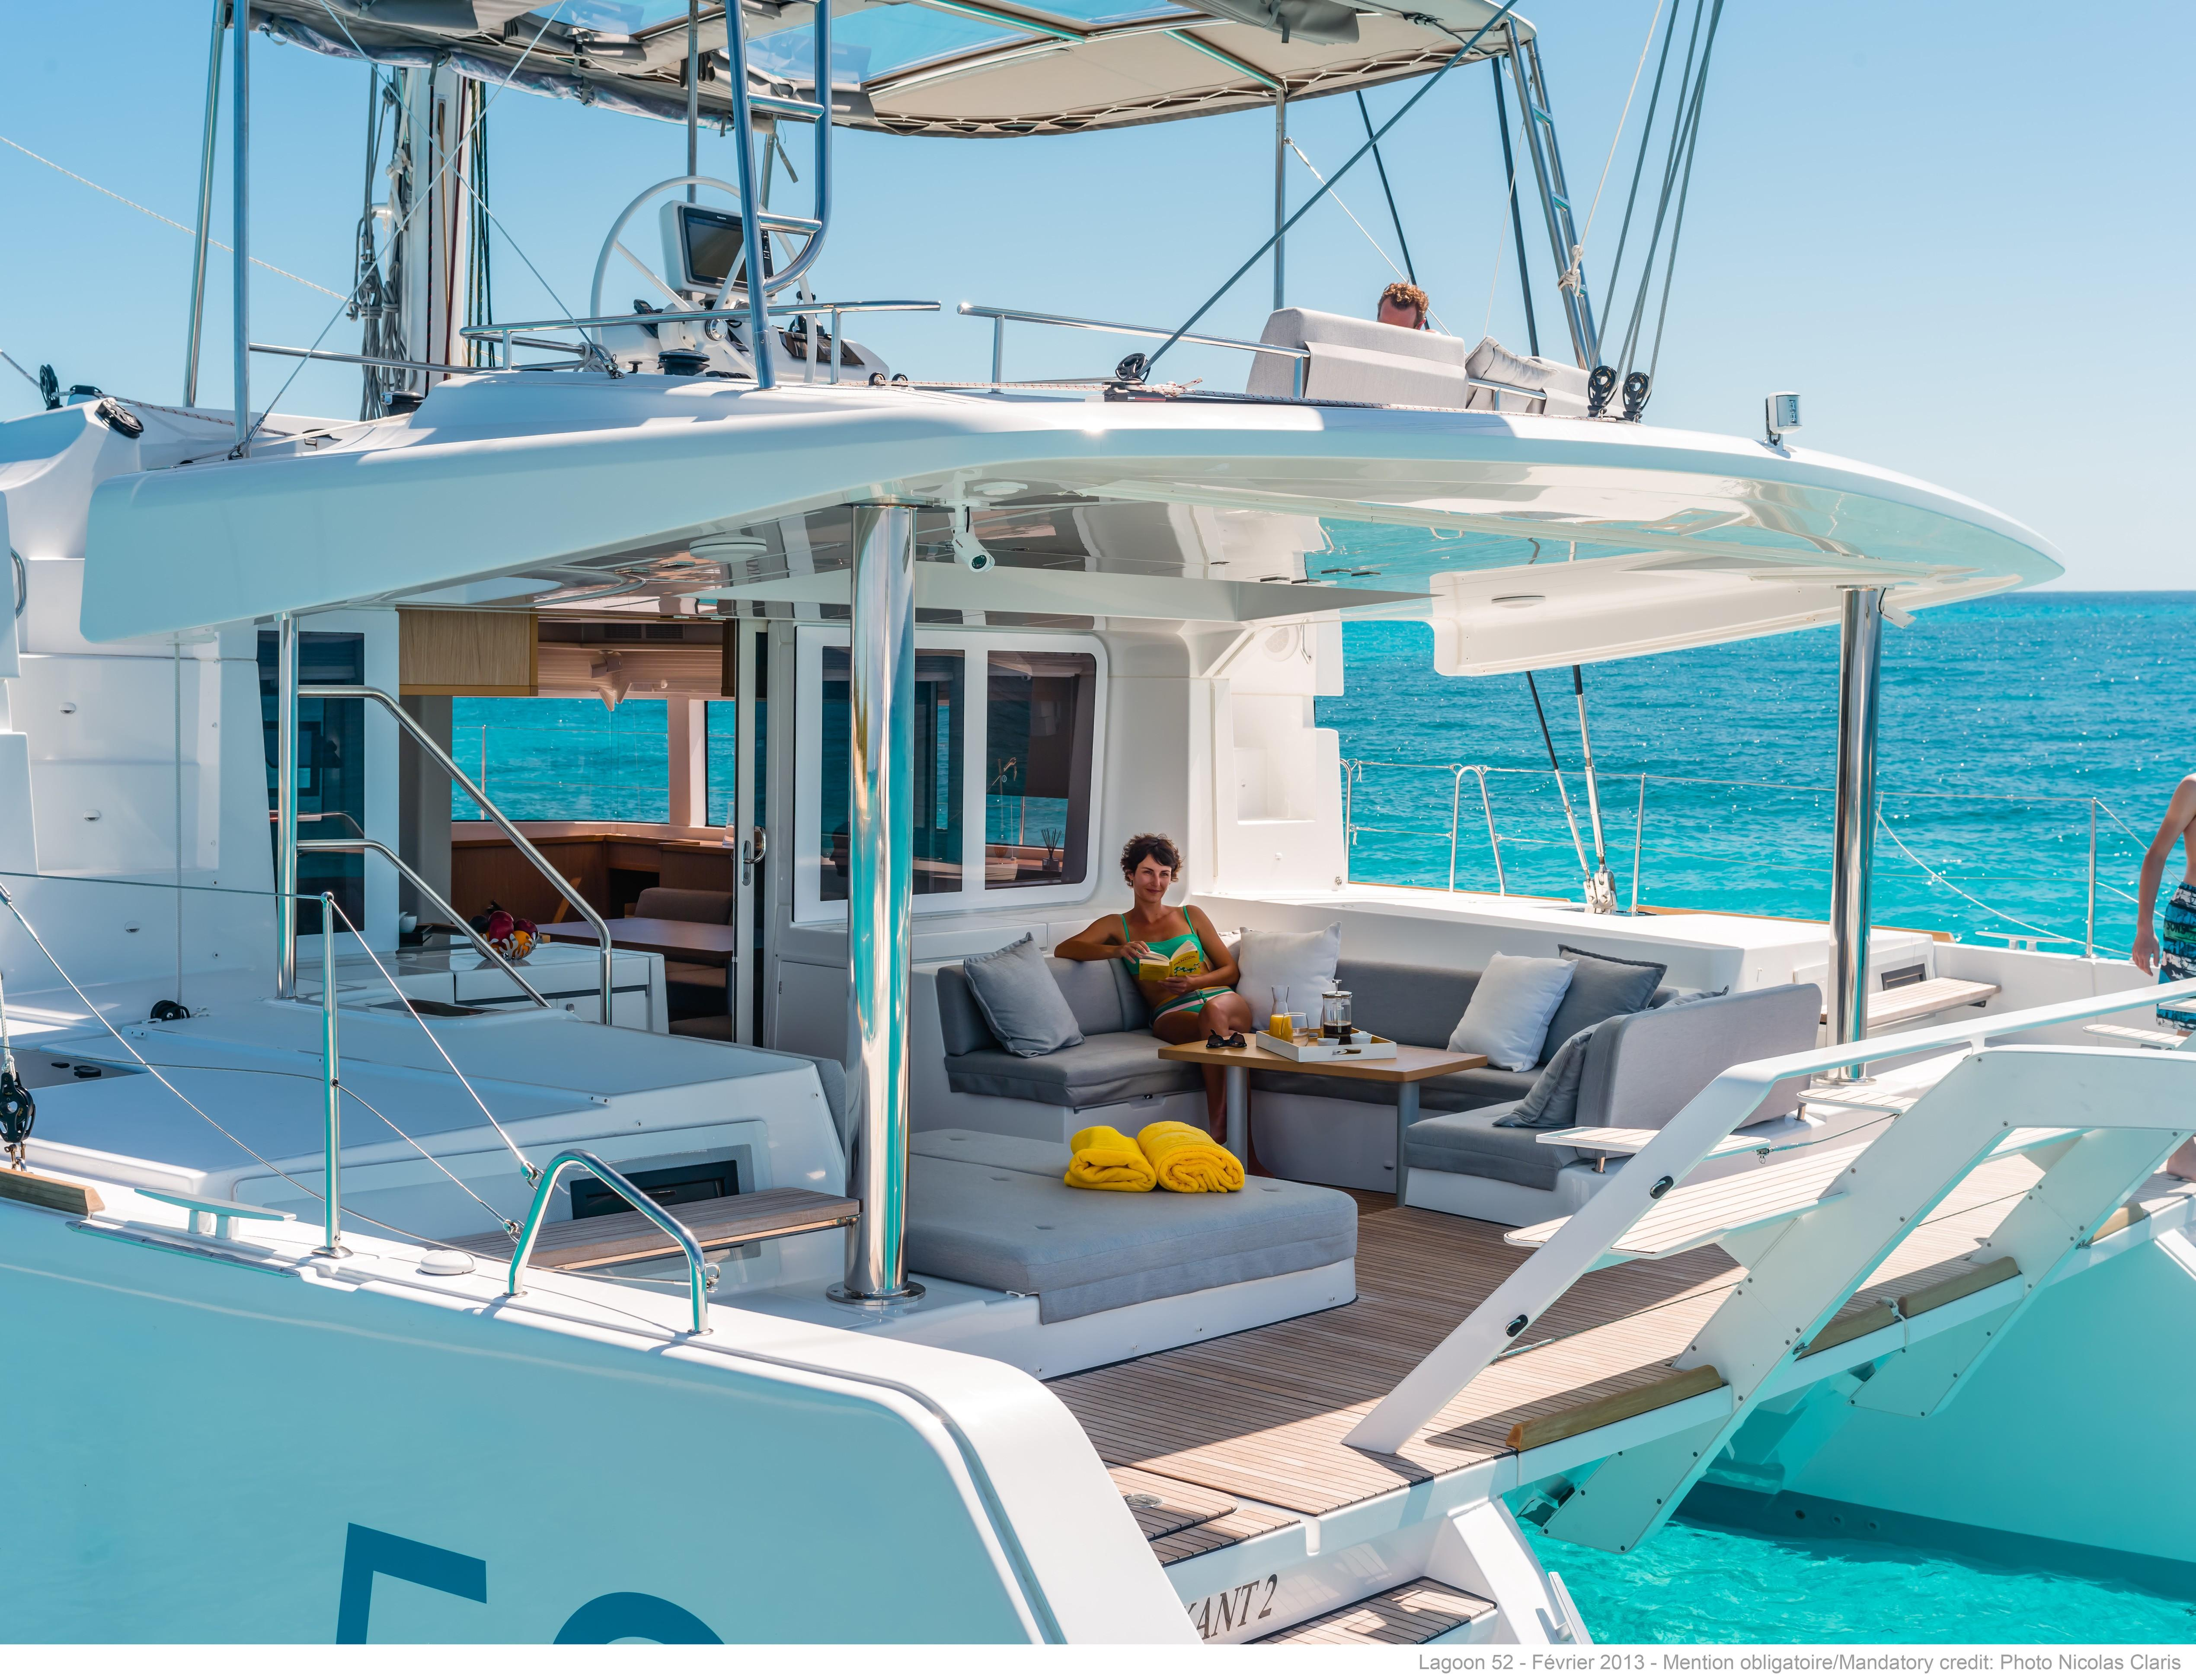 helloManufacturer Provided Image: Lagoon 52 F Cockpit